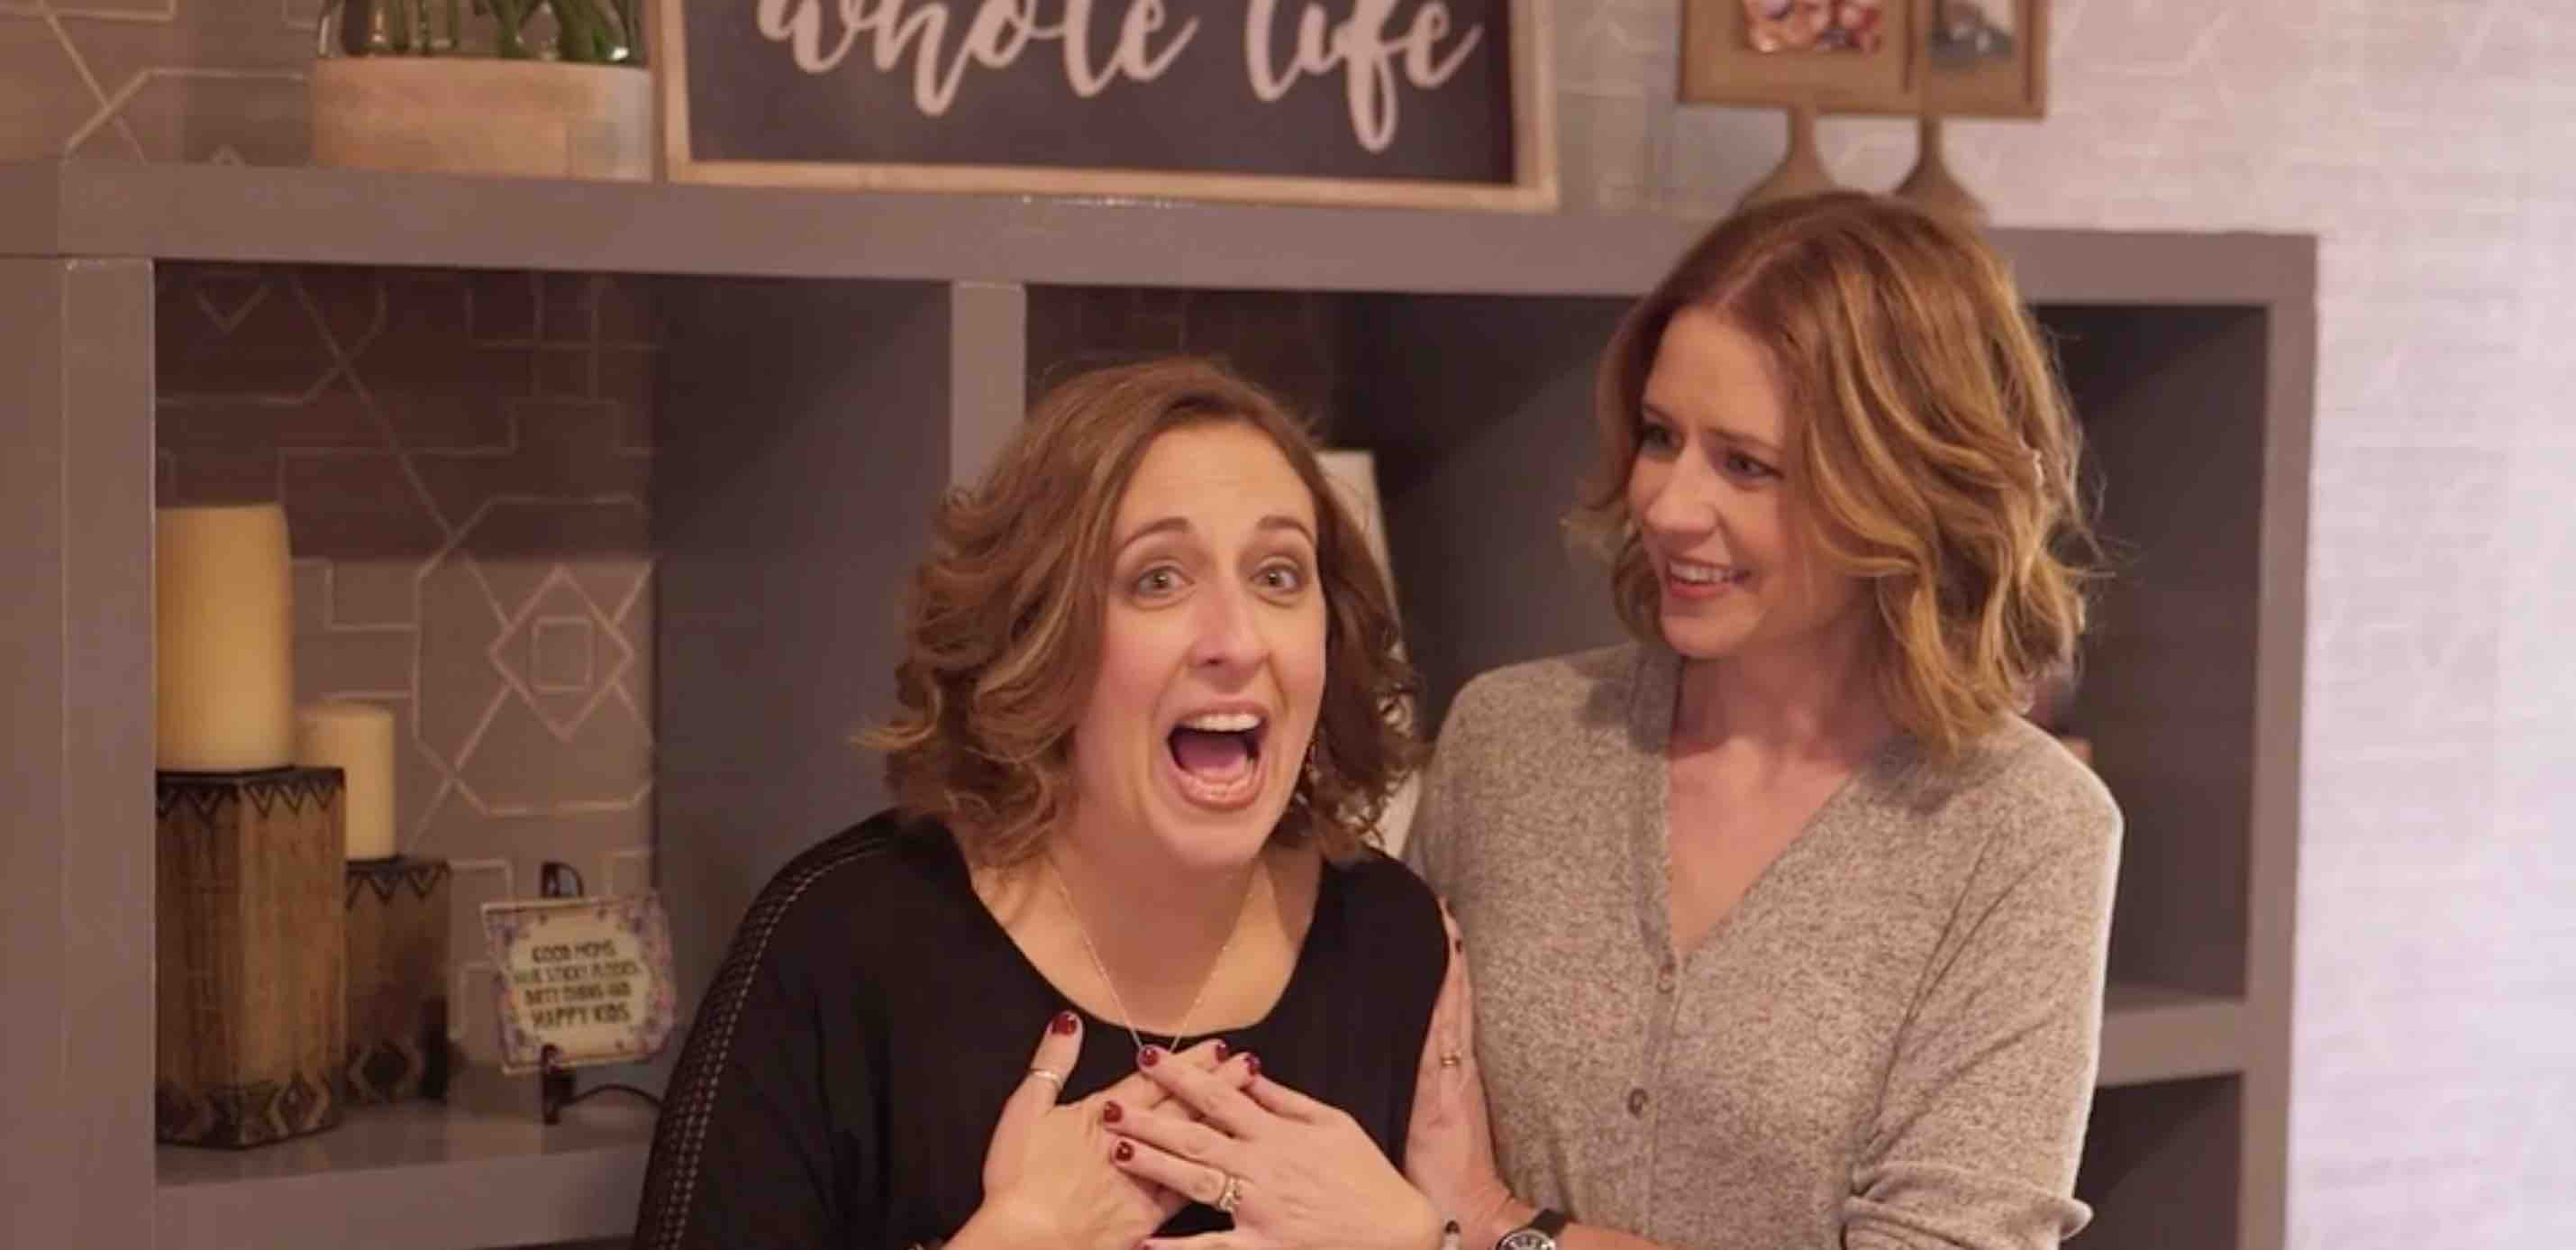 """Siblings Day Surprise: Jenna Fischer Secretly Remodels Sister's Home in Latest """"My Houzz"""""""